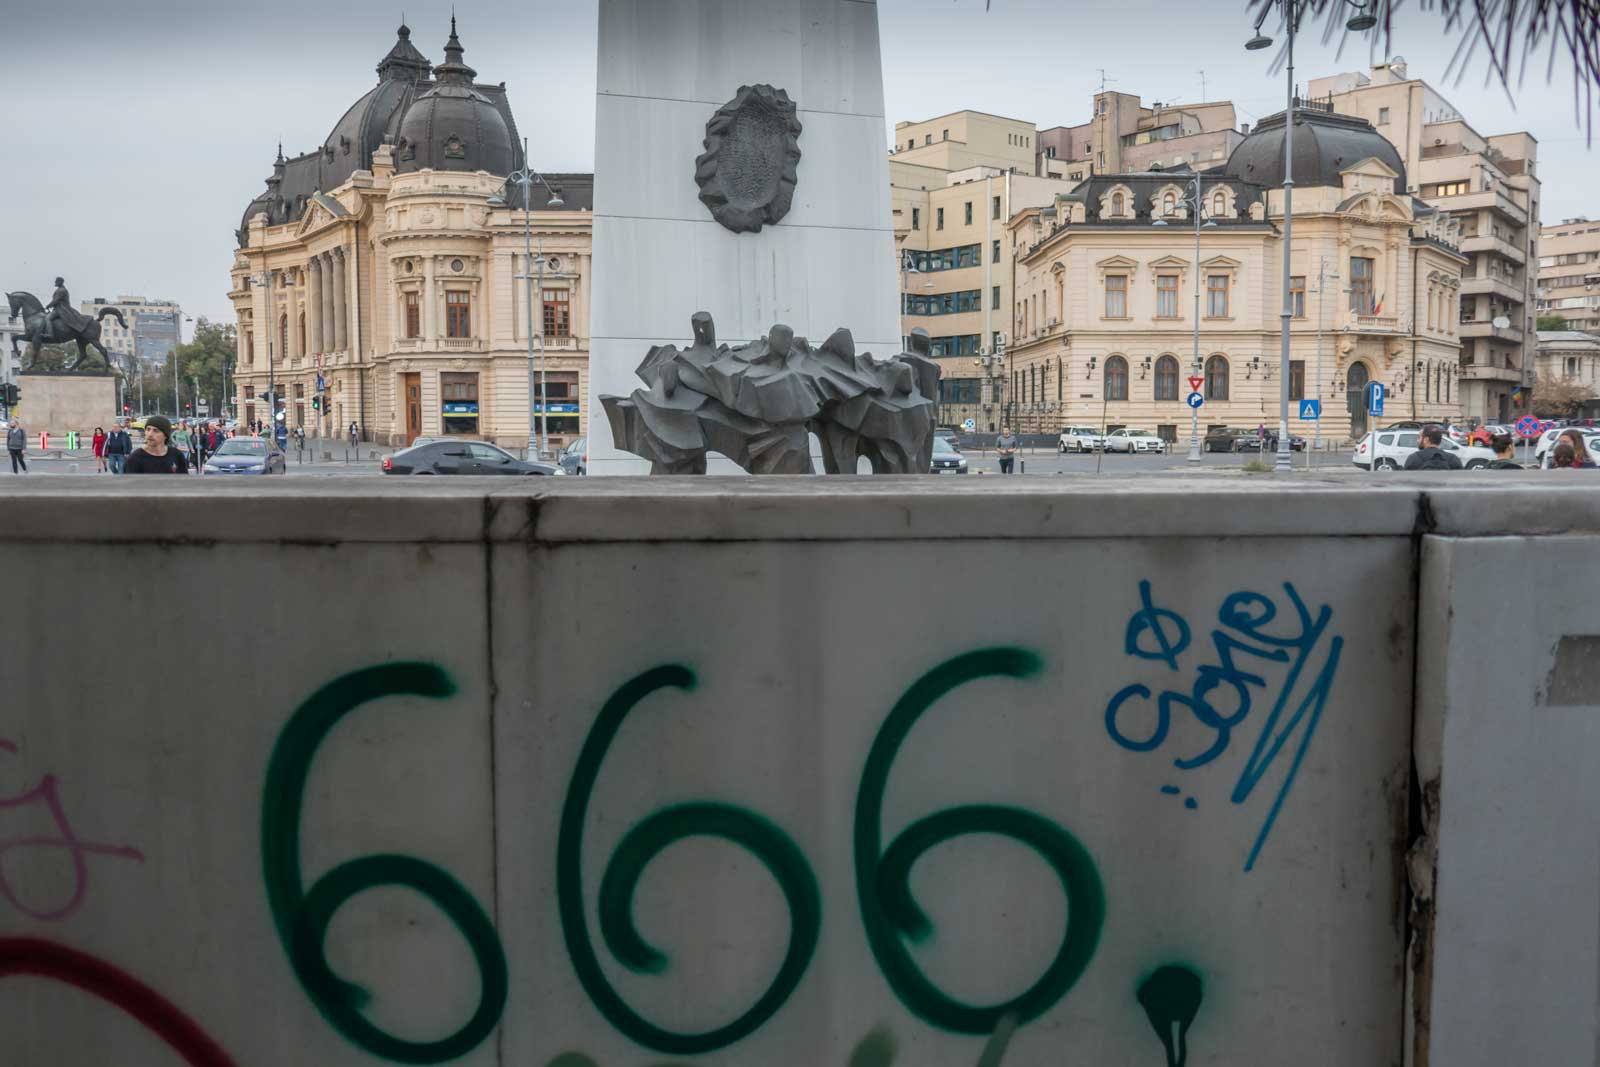 666 Revolution Square Bucharest Romania